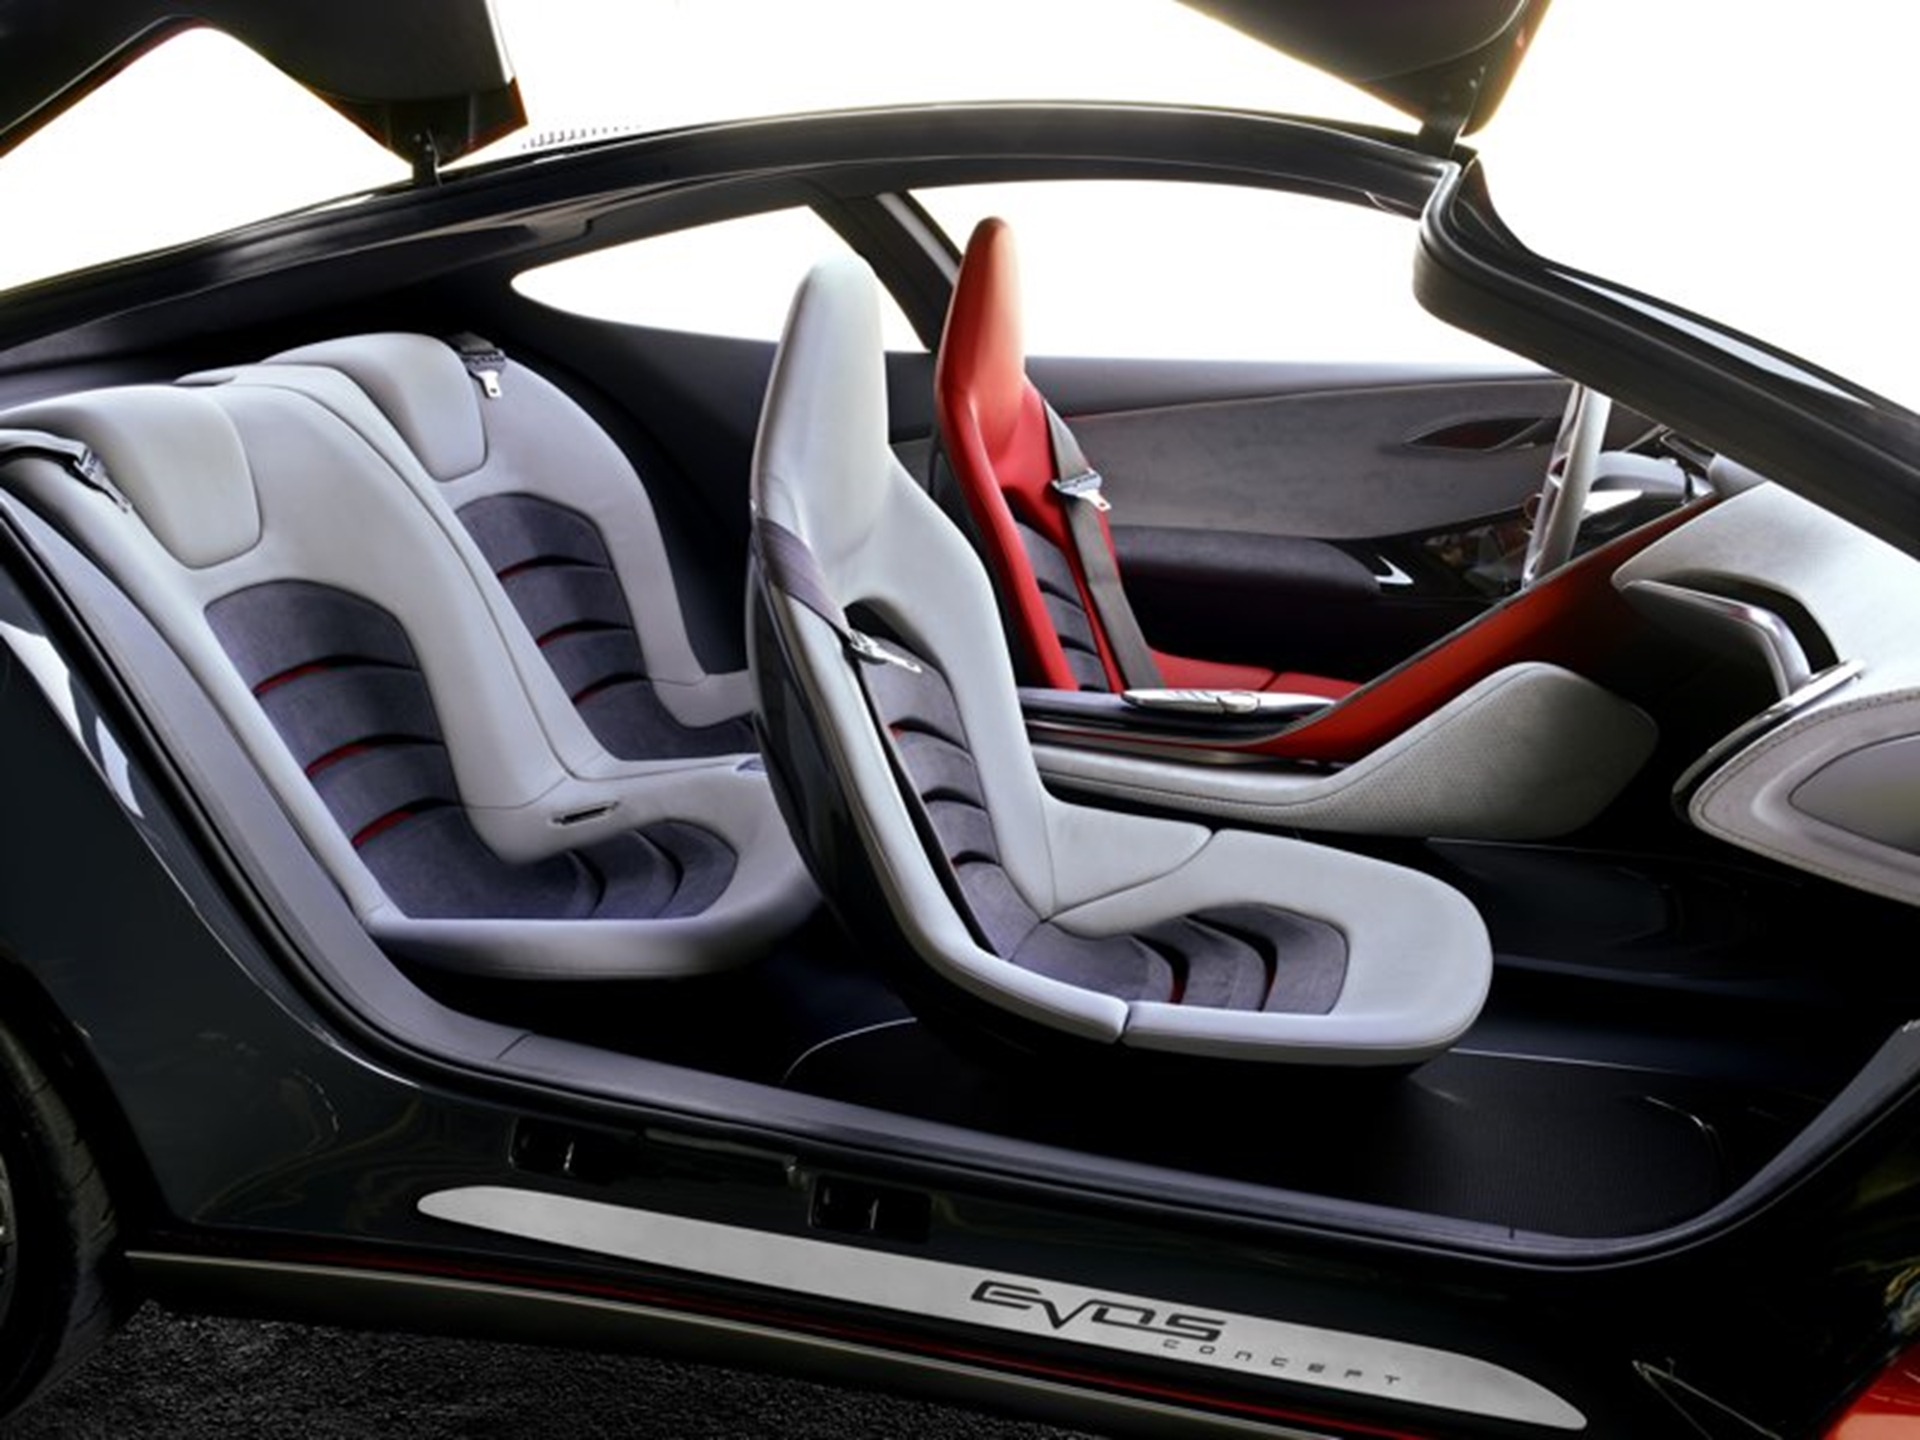 Ford Concept Cars 2011 Interior Side View